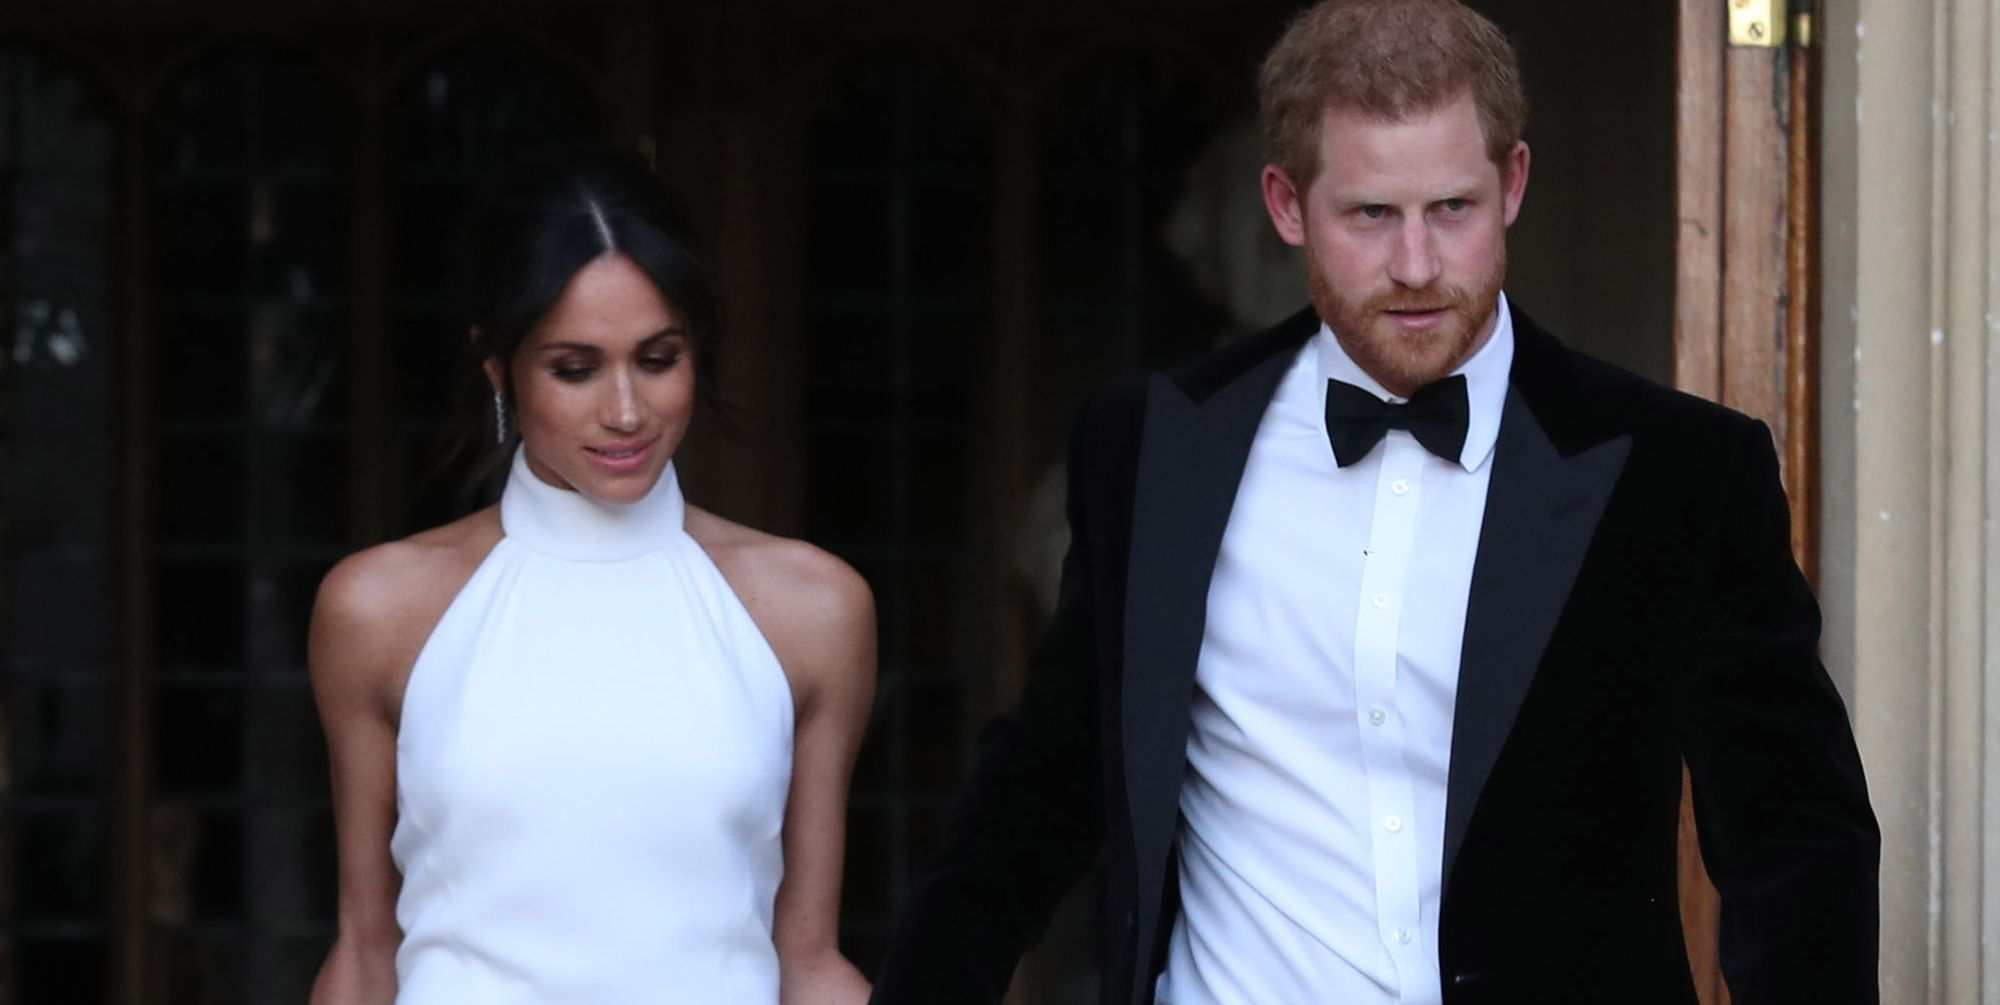 Prince Harry and Meghan Markle Are Reportedly Returning $9 Million Worth of Wedding Gifts